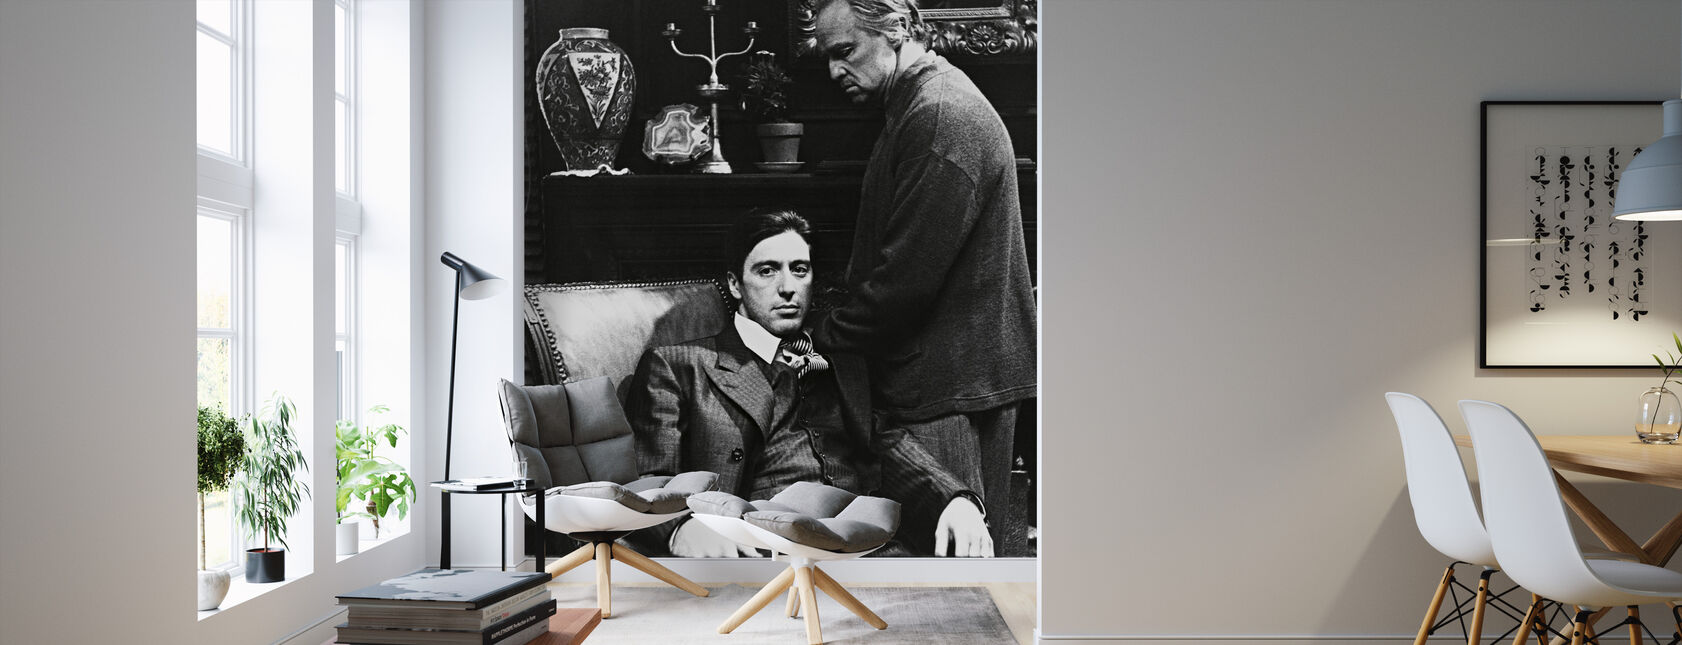 Godfather - Al Pacino and Marlon Brando - Wallpaper - Living Room